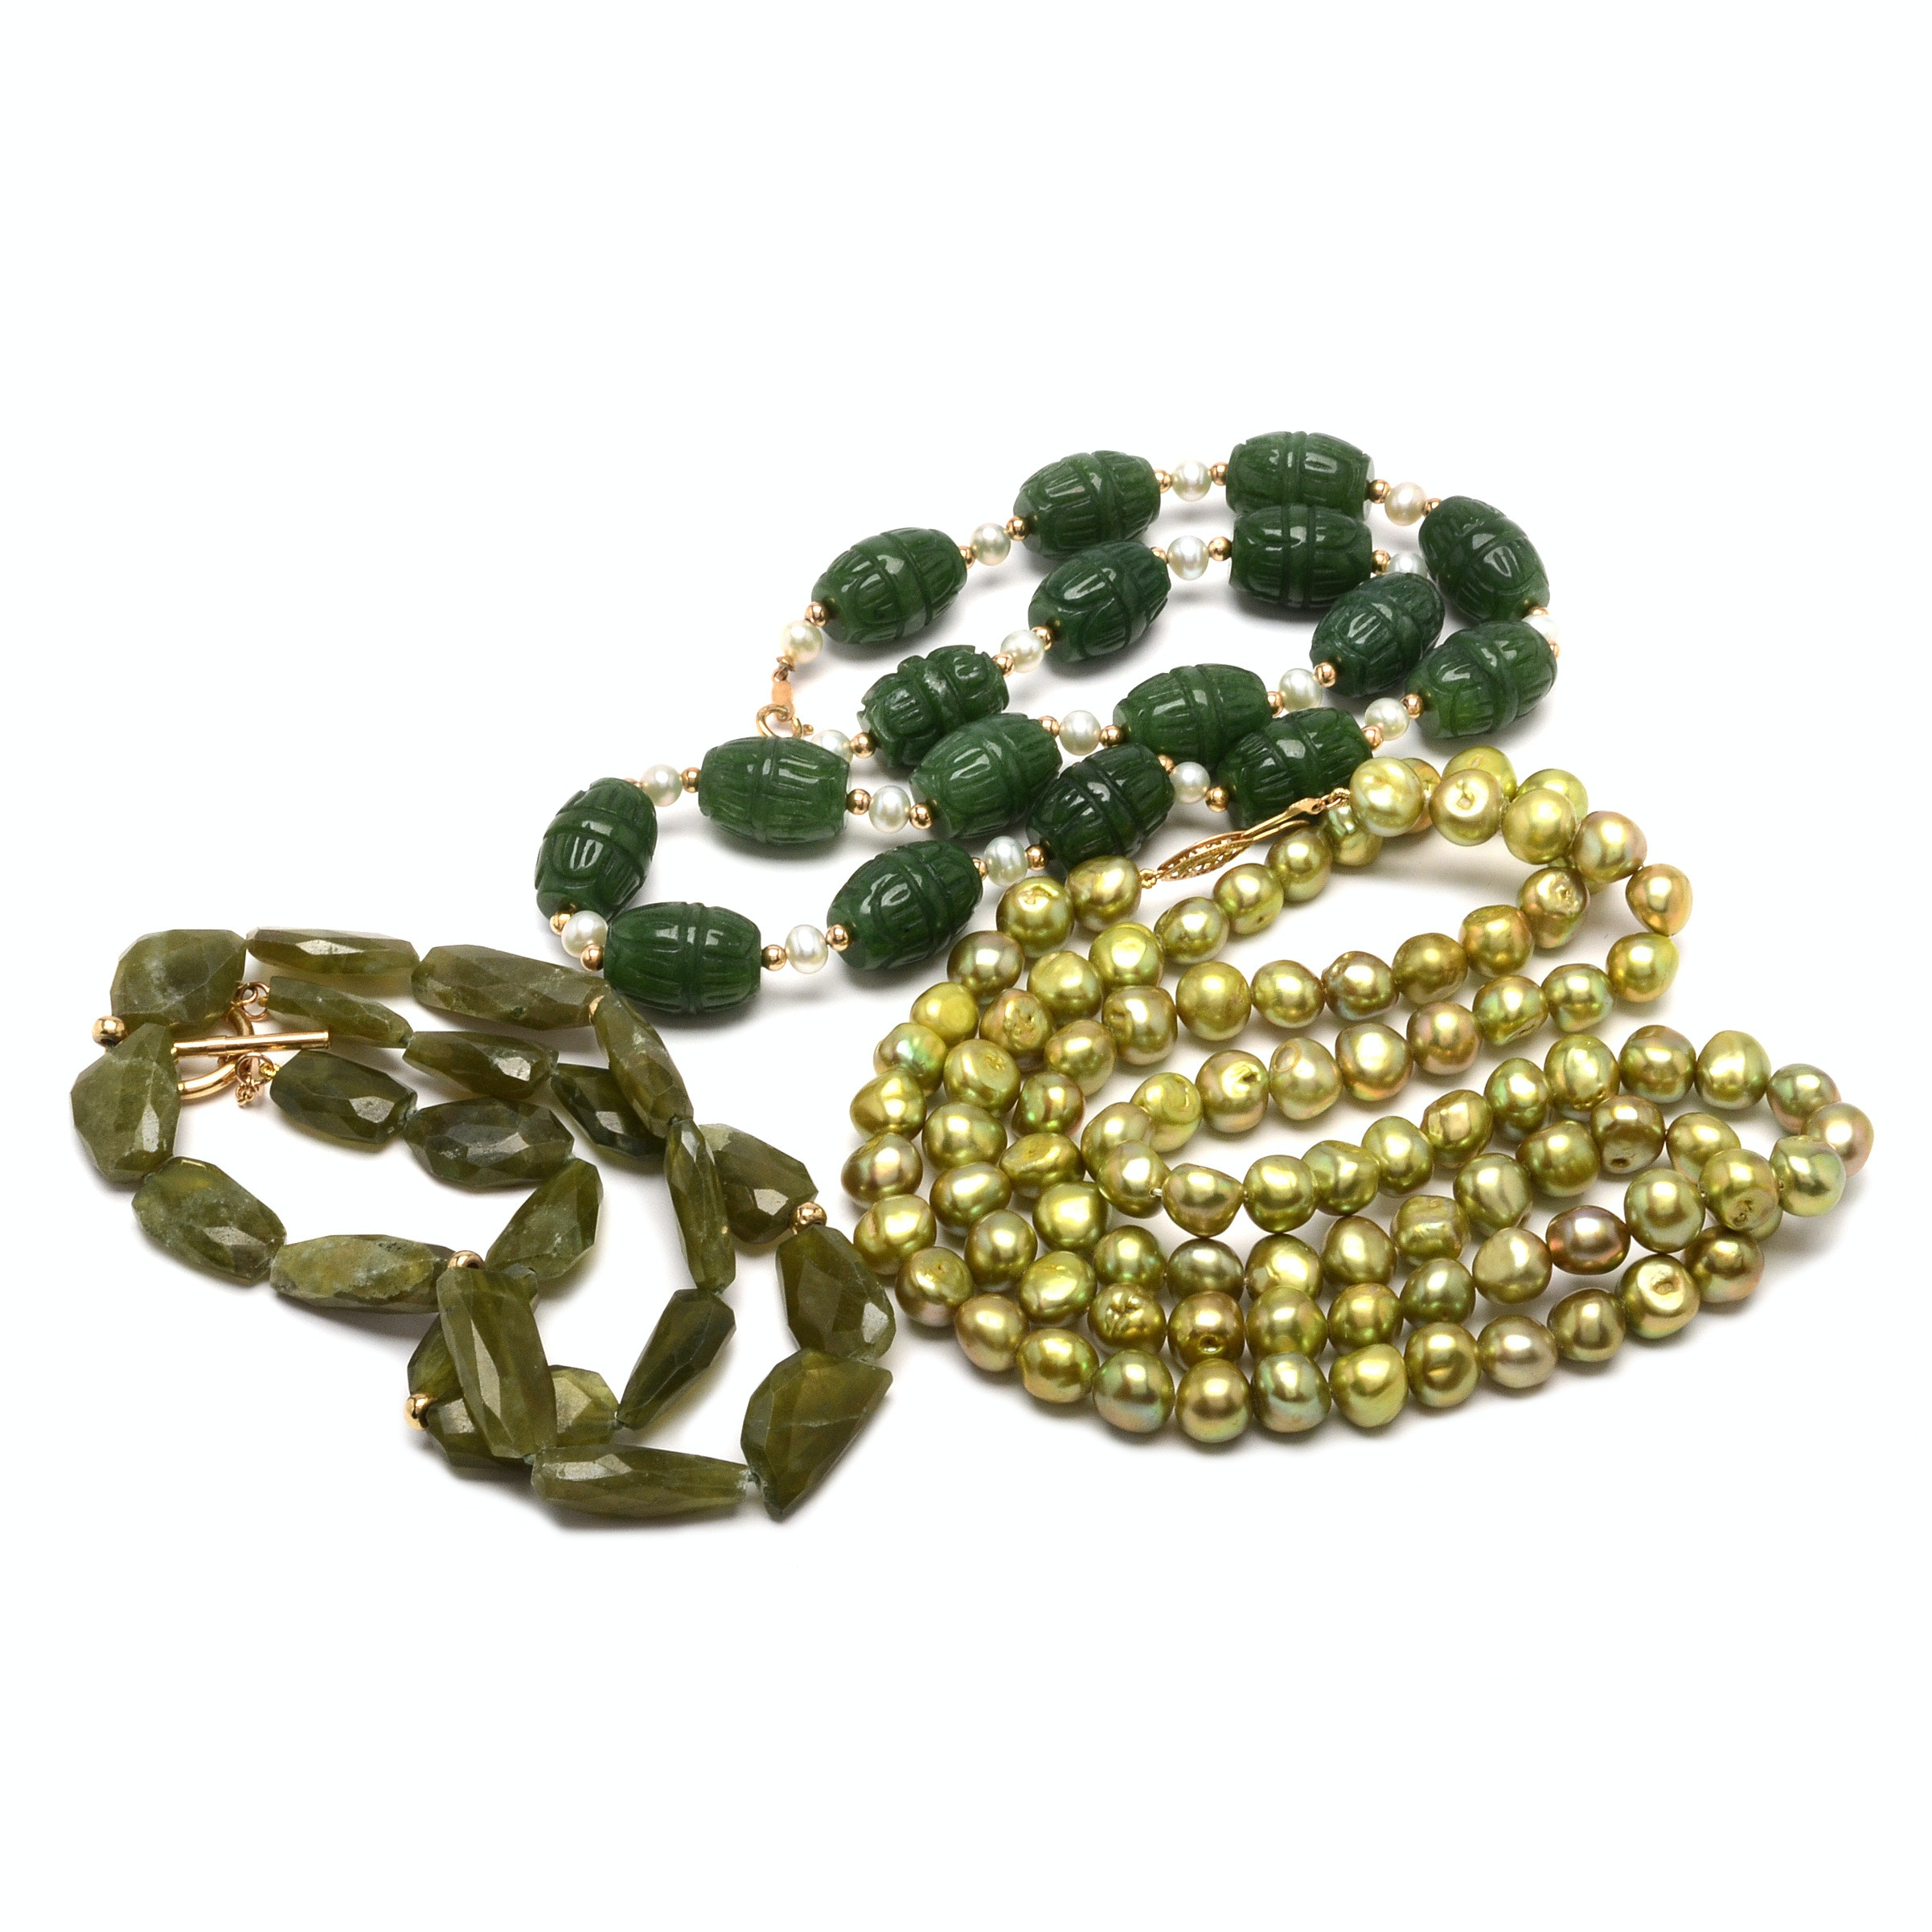 14K Gold and Green Gemstone Necklaces